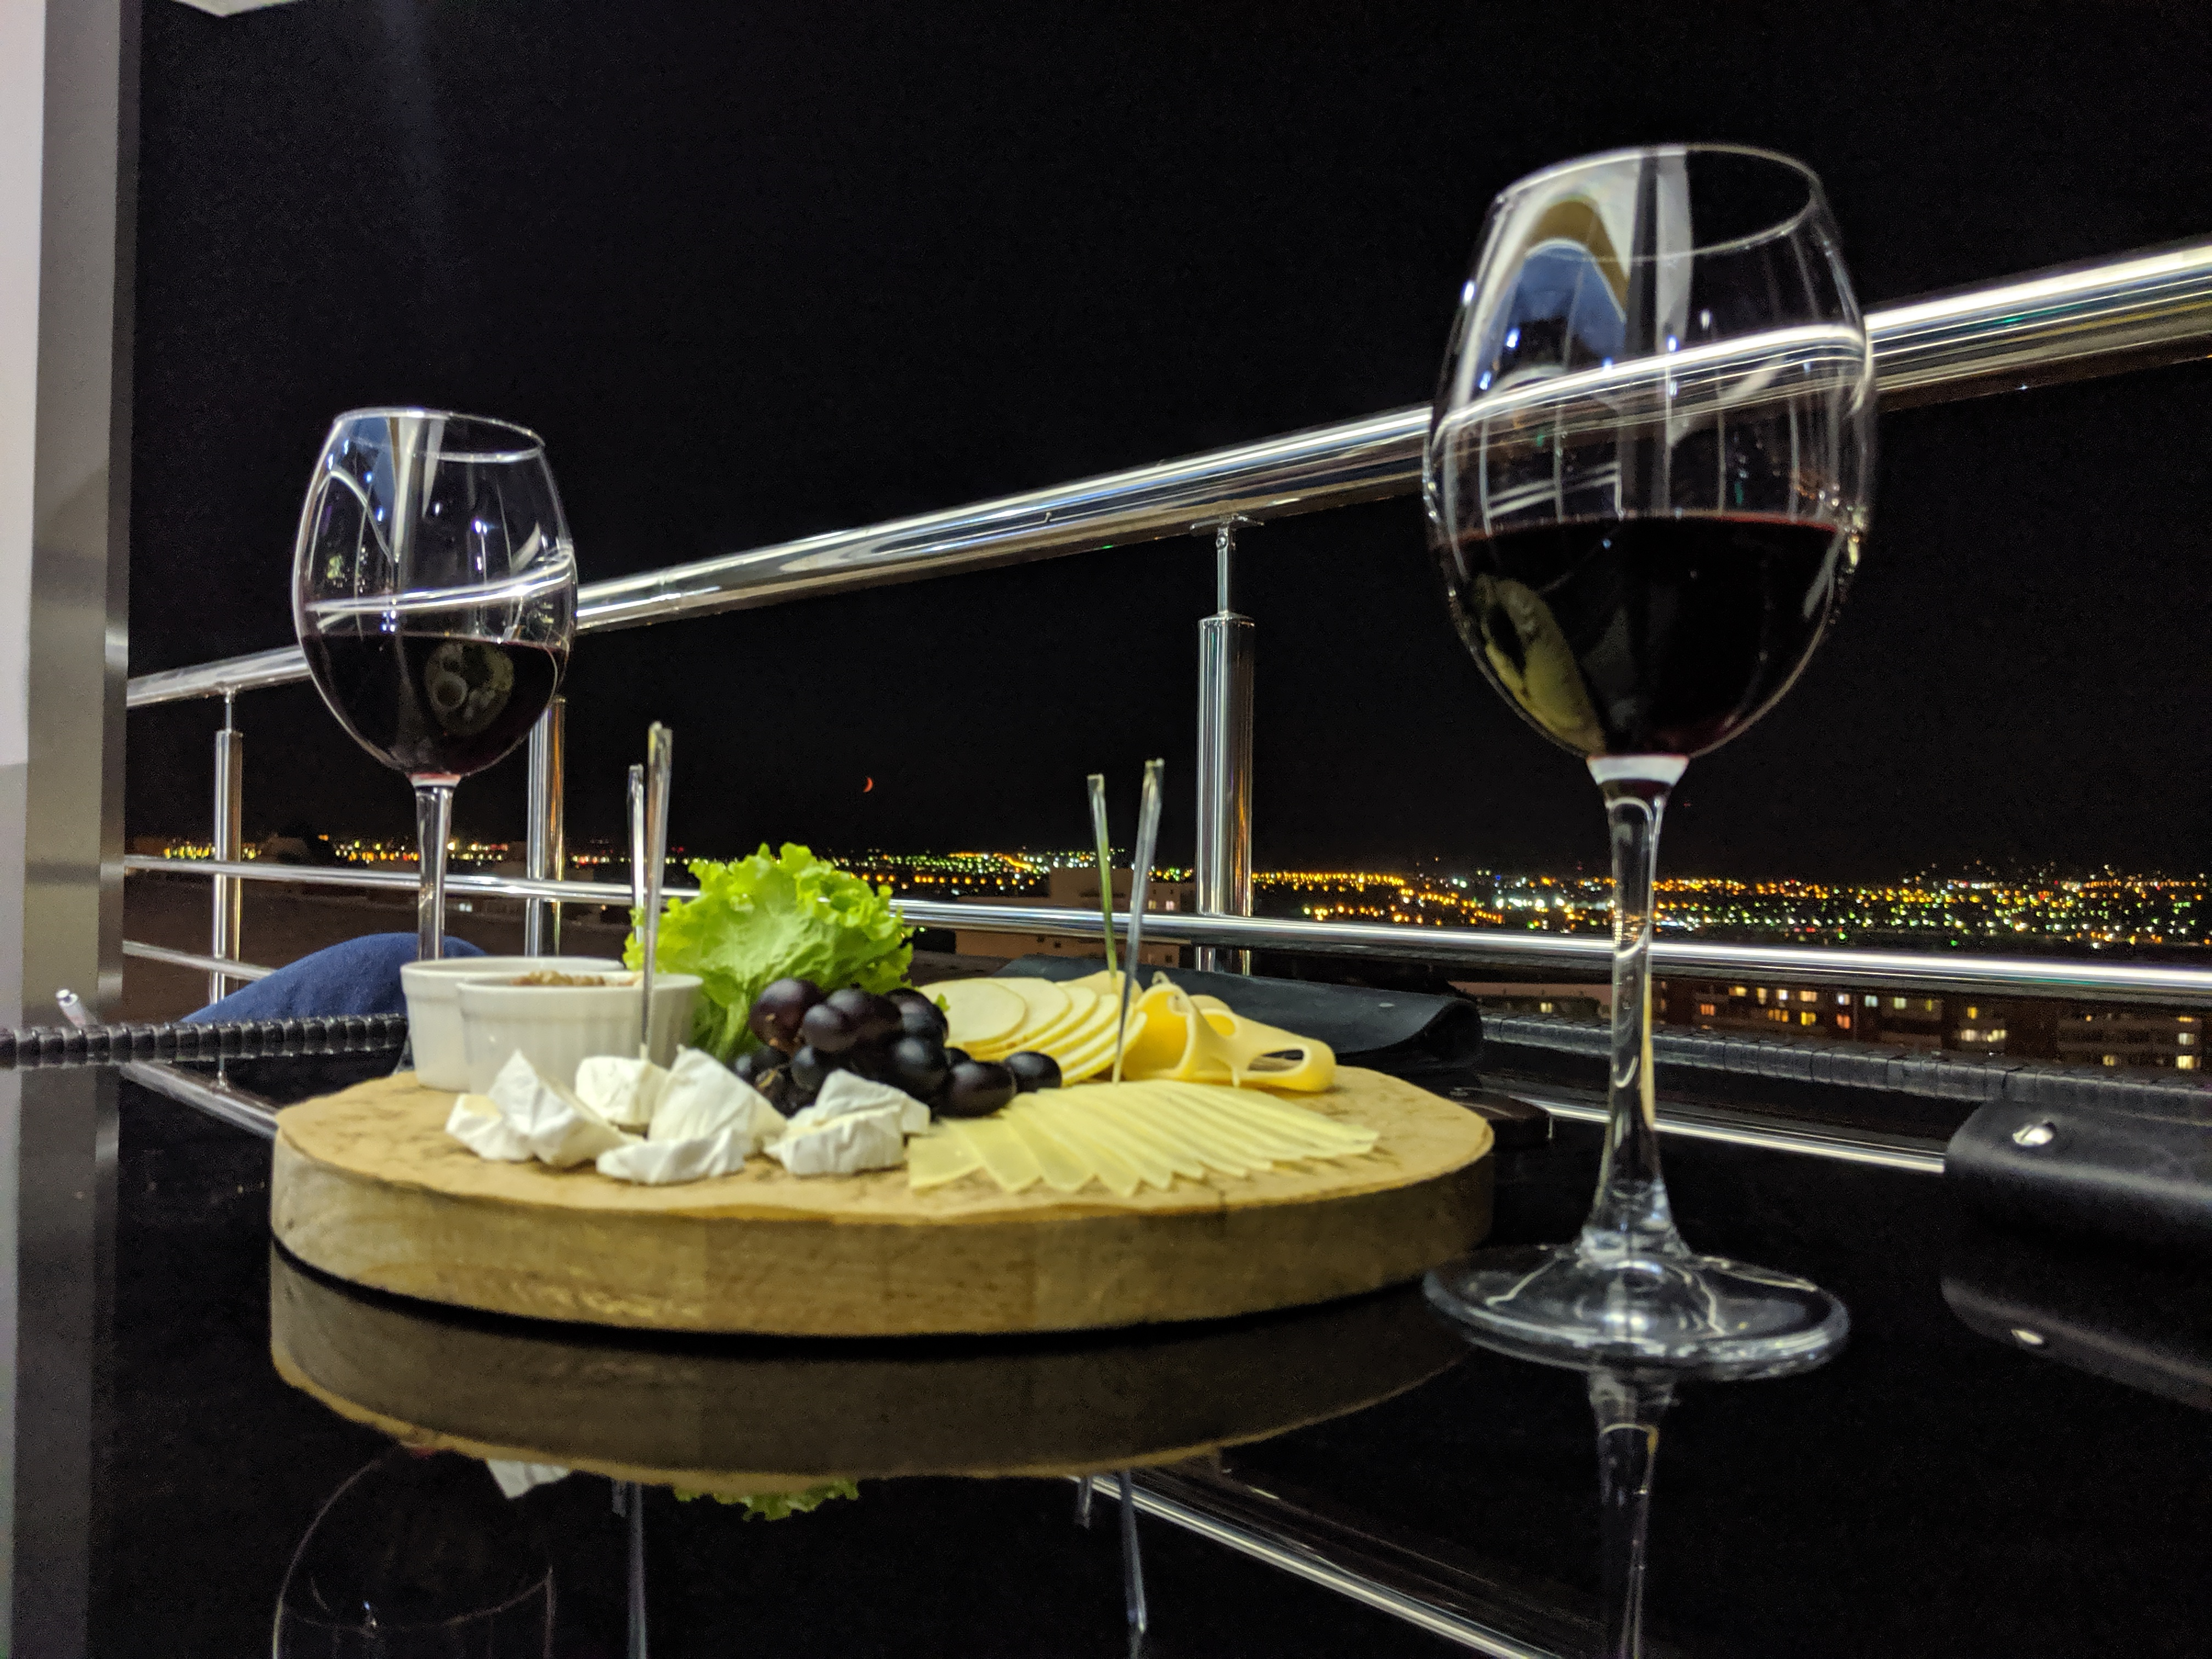 Beautiful night with wine and cheese in Ulan-Ude, Russia